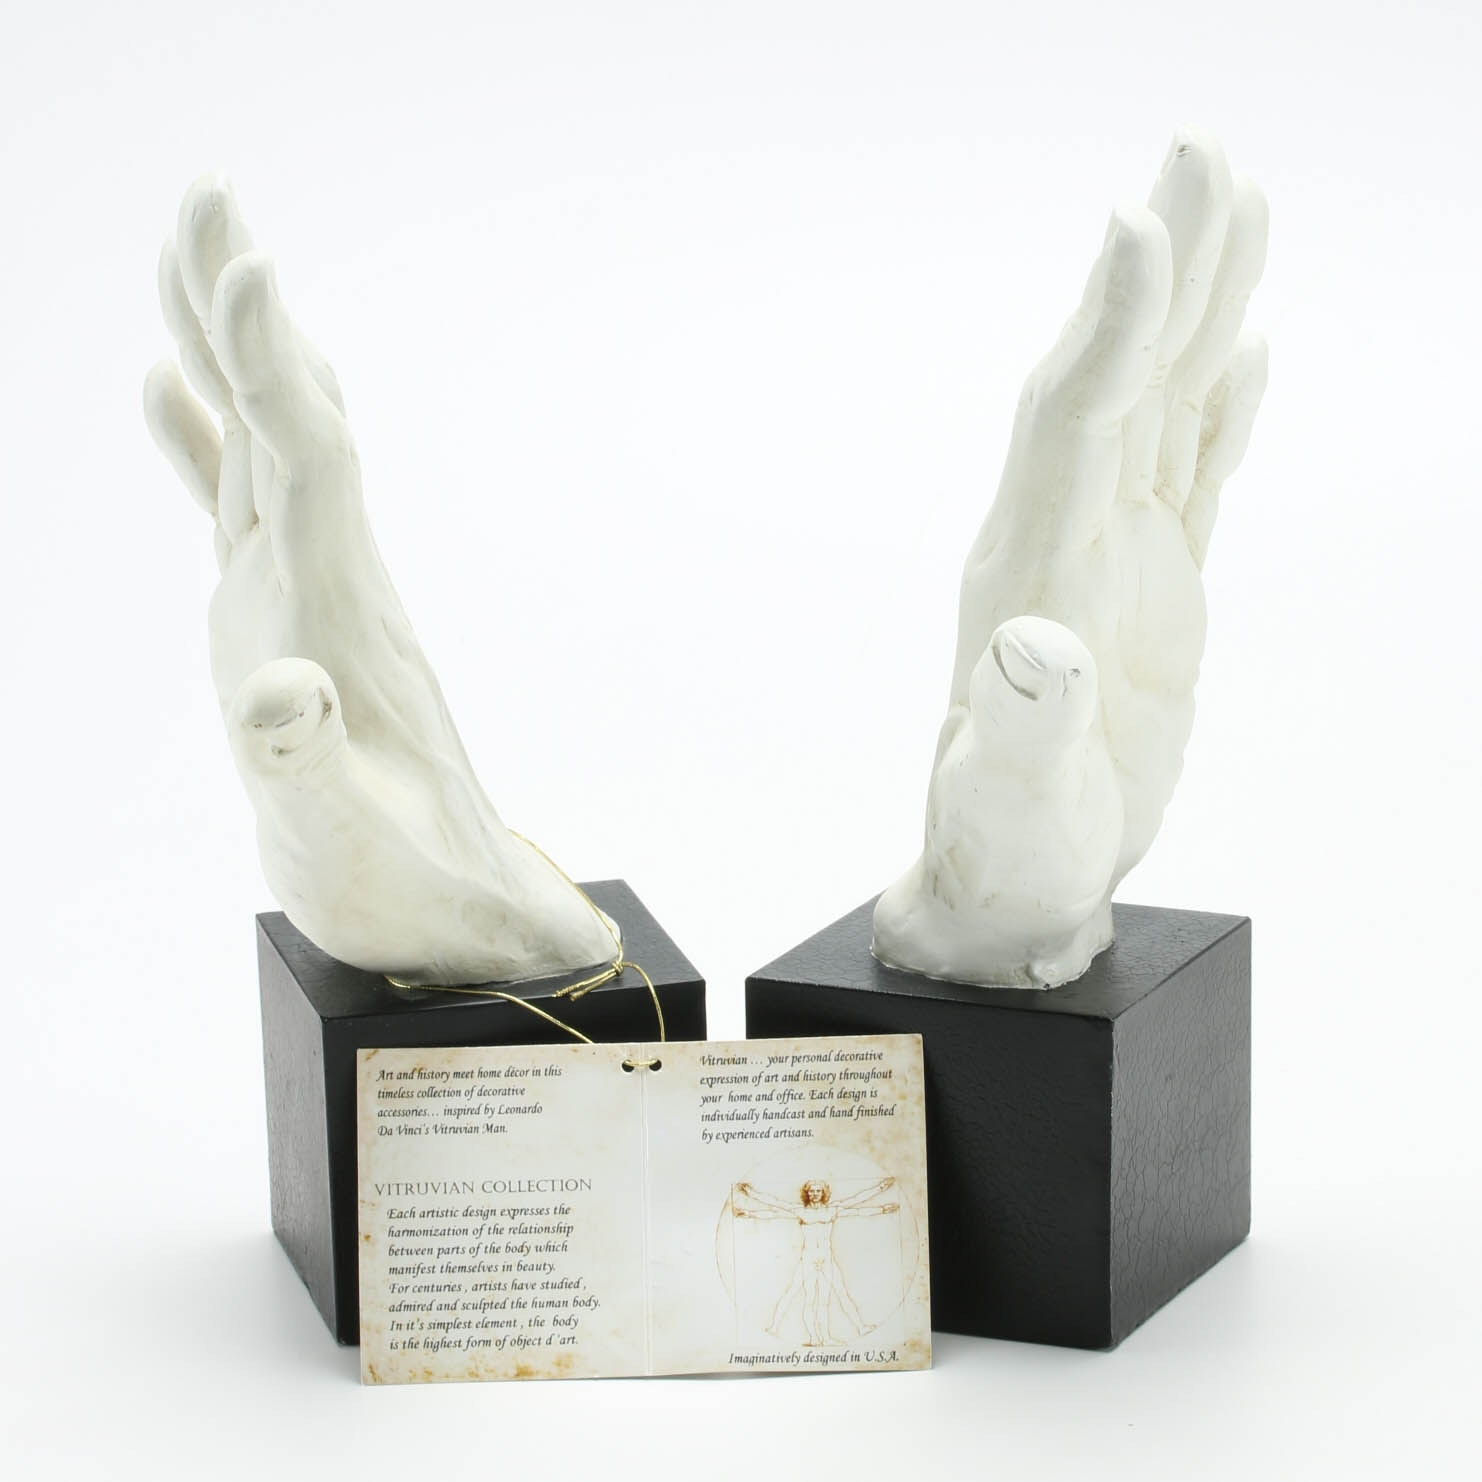 Vitruvian Collection Hand Sculpture Bookends